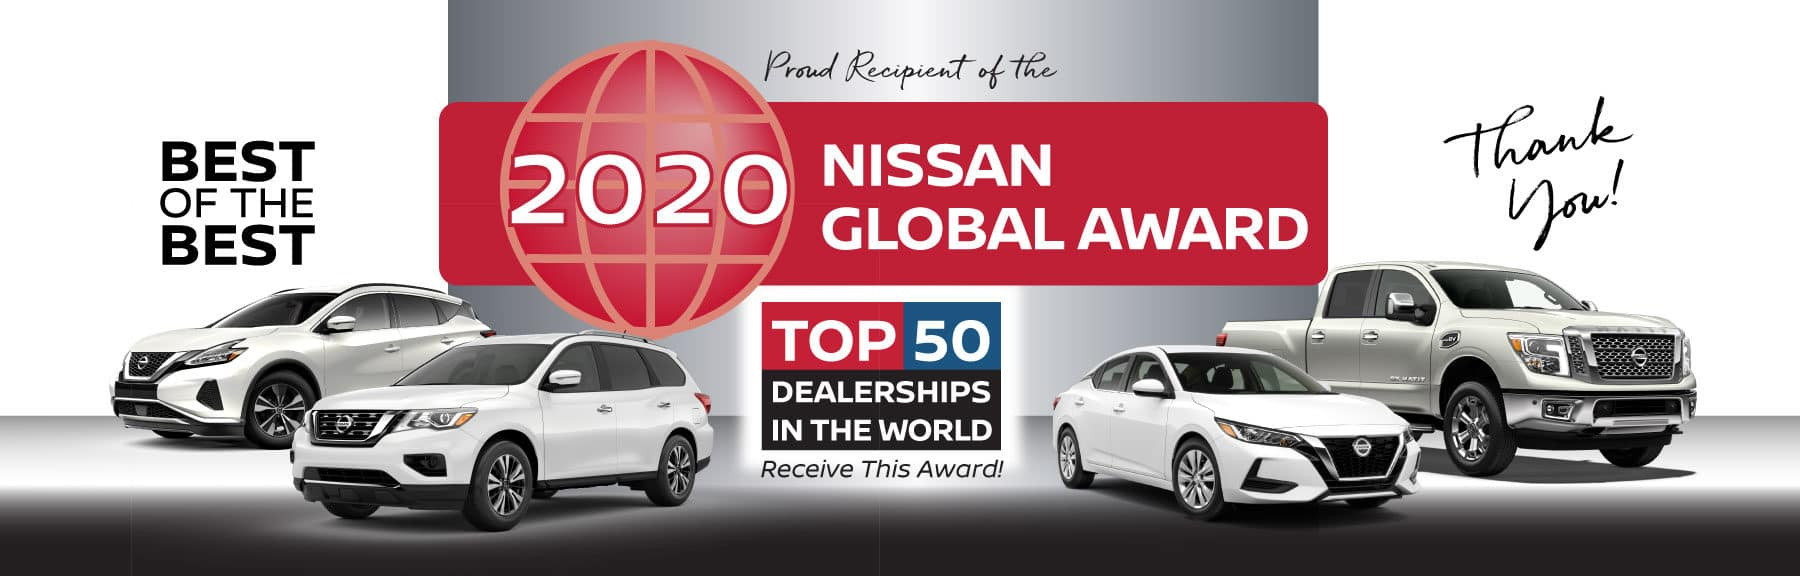 Nissan-Global-Award